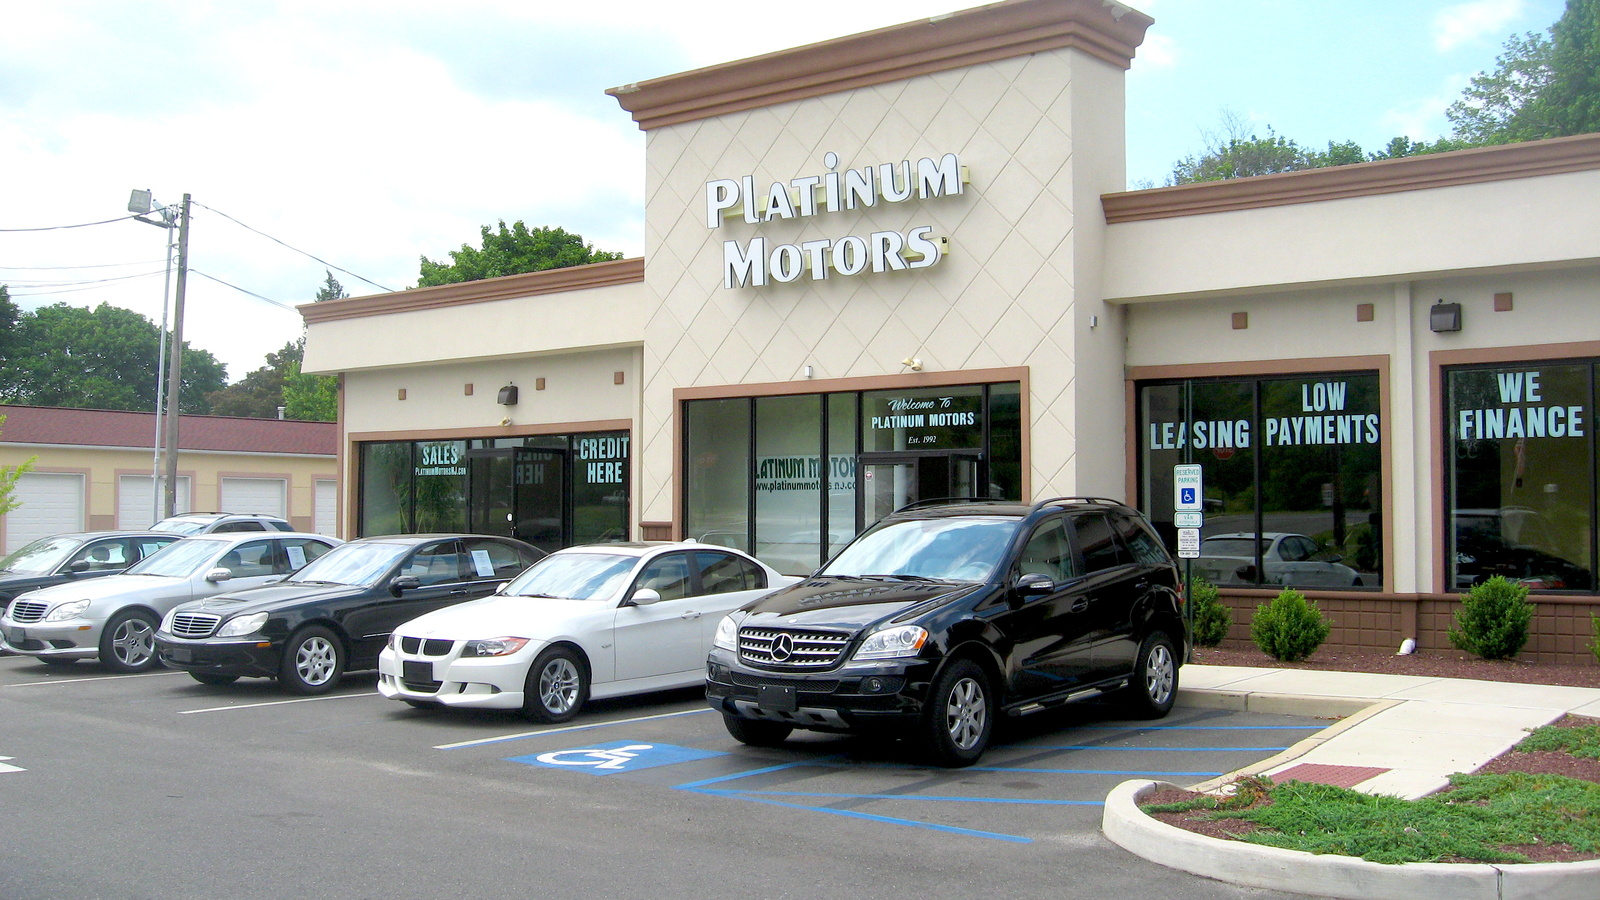 Nissan Dealers In Nj >> Platinum Motors - Freehold, NJ: Read Consumer reviews ...